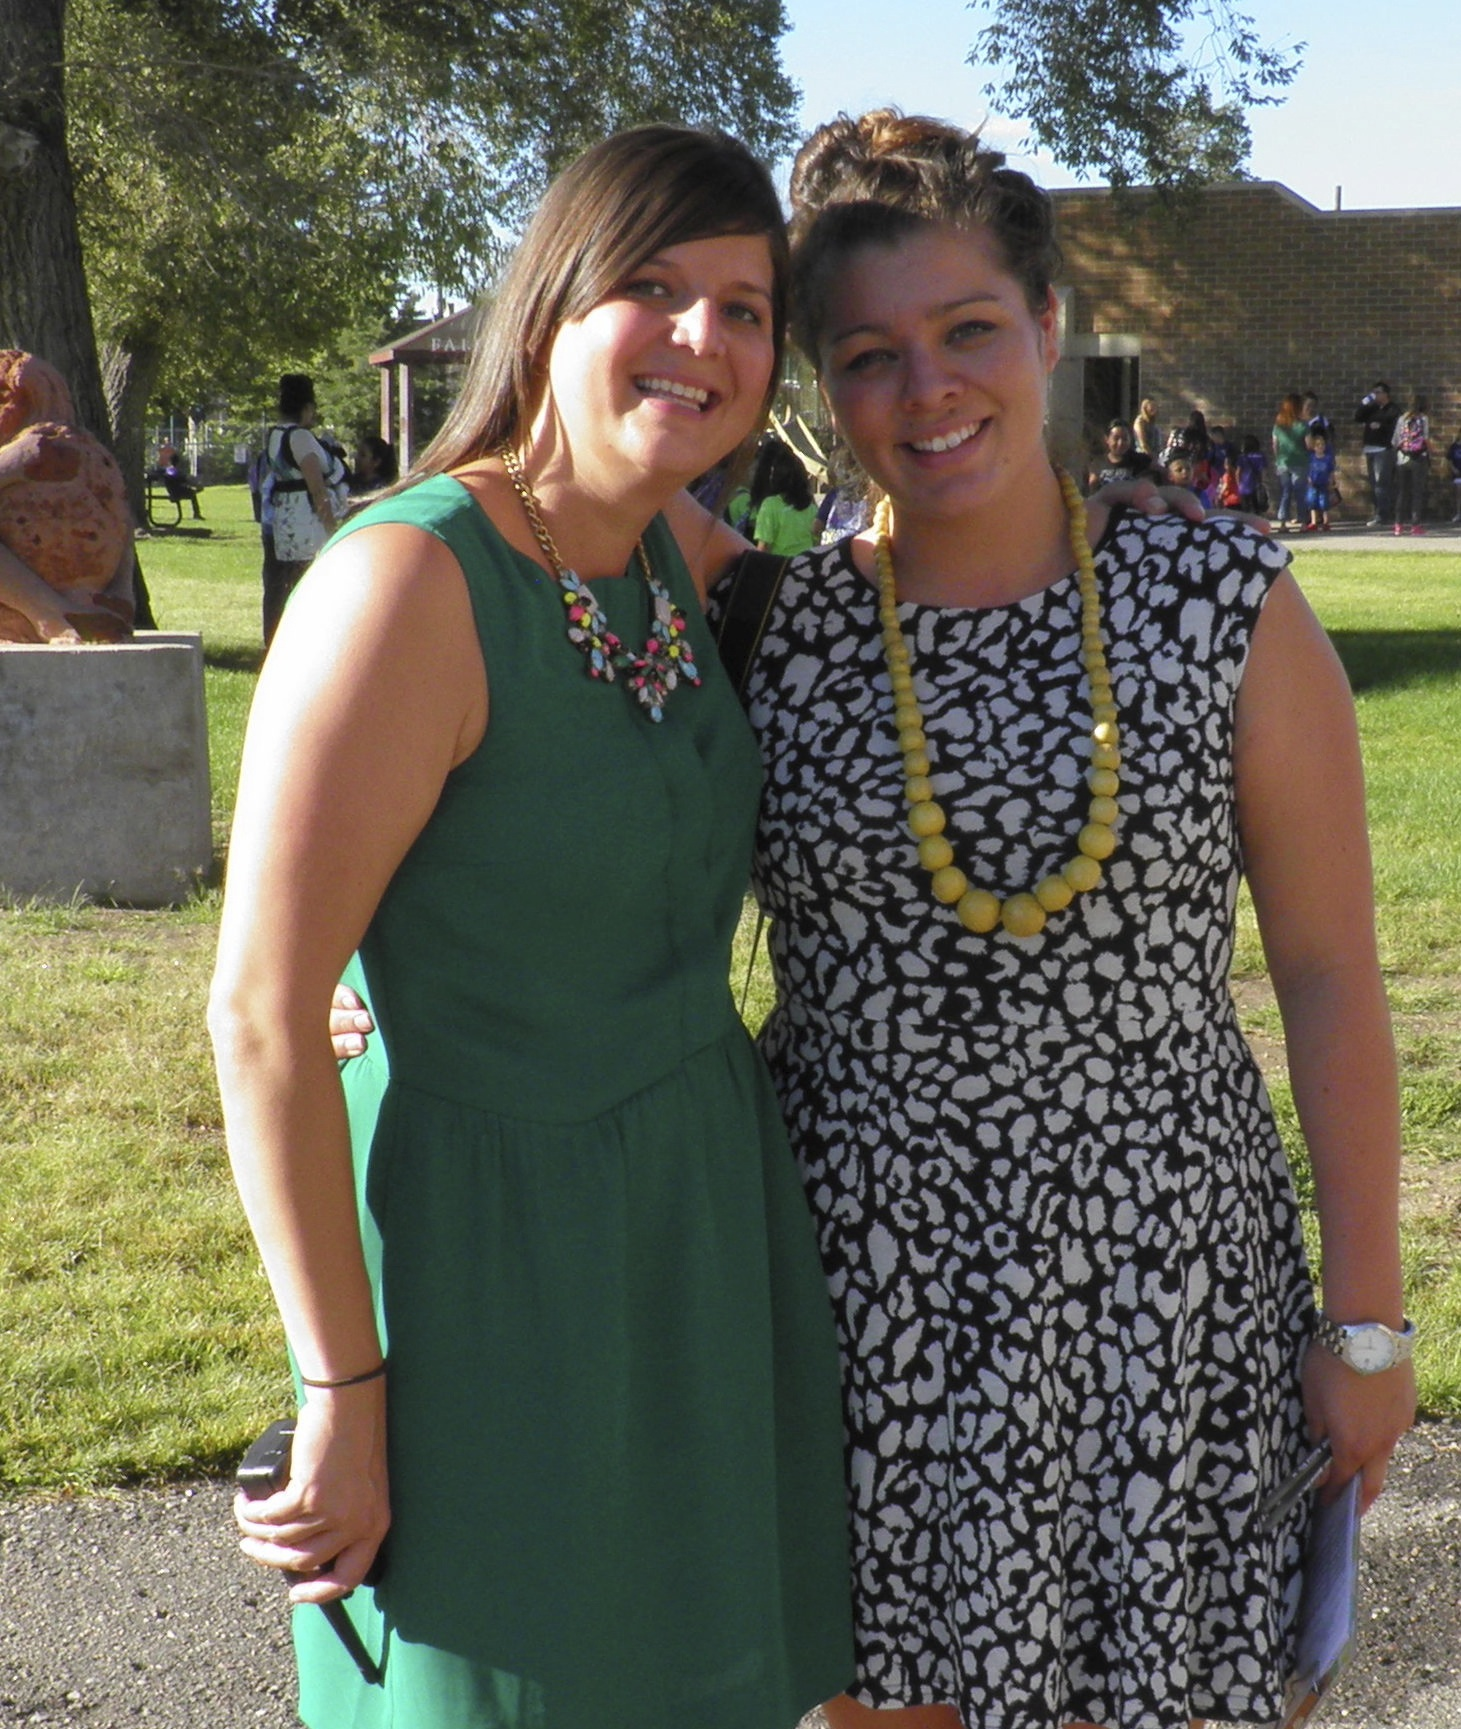 A young woman in a green dress and a young woman in a blue dress smiling in a park with their arms around each other.